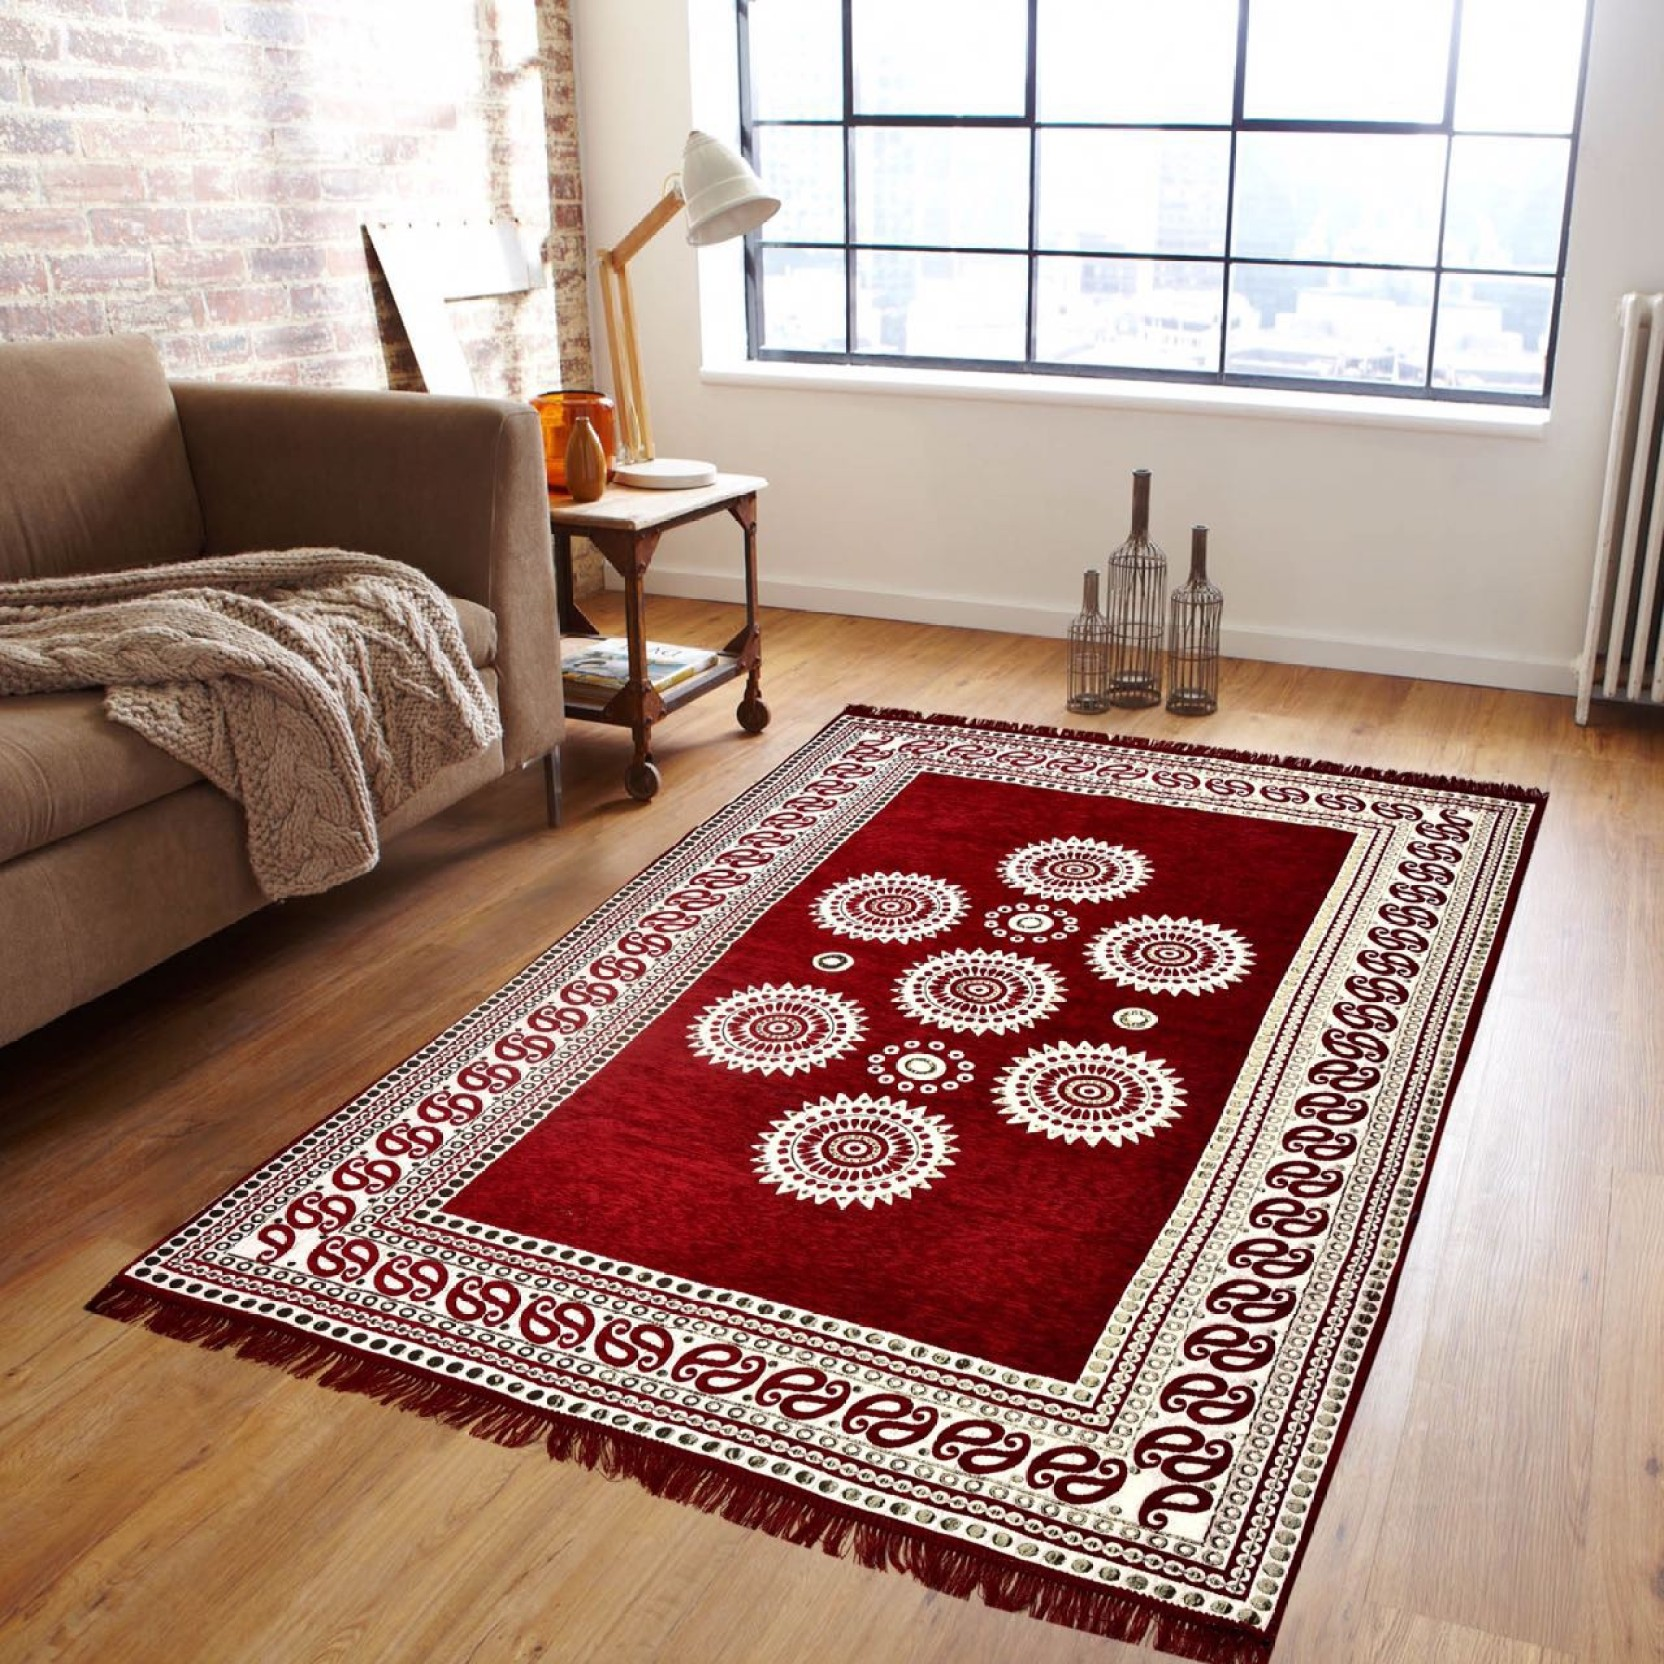 Zesture multicolor chenille area rug buy zesture for Best place to buy rugs online